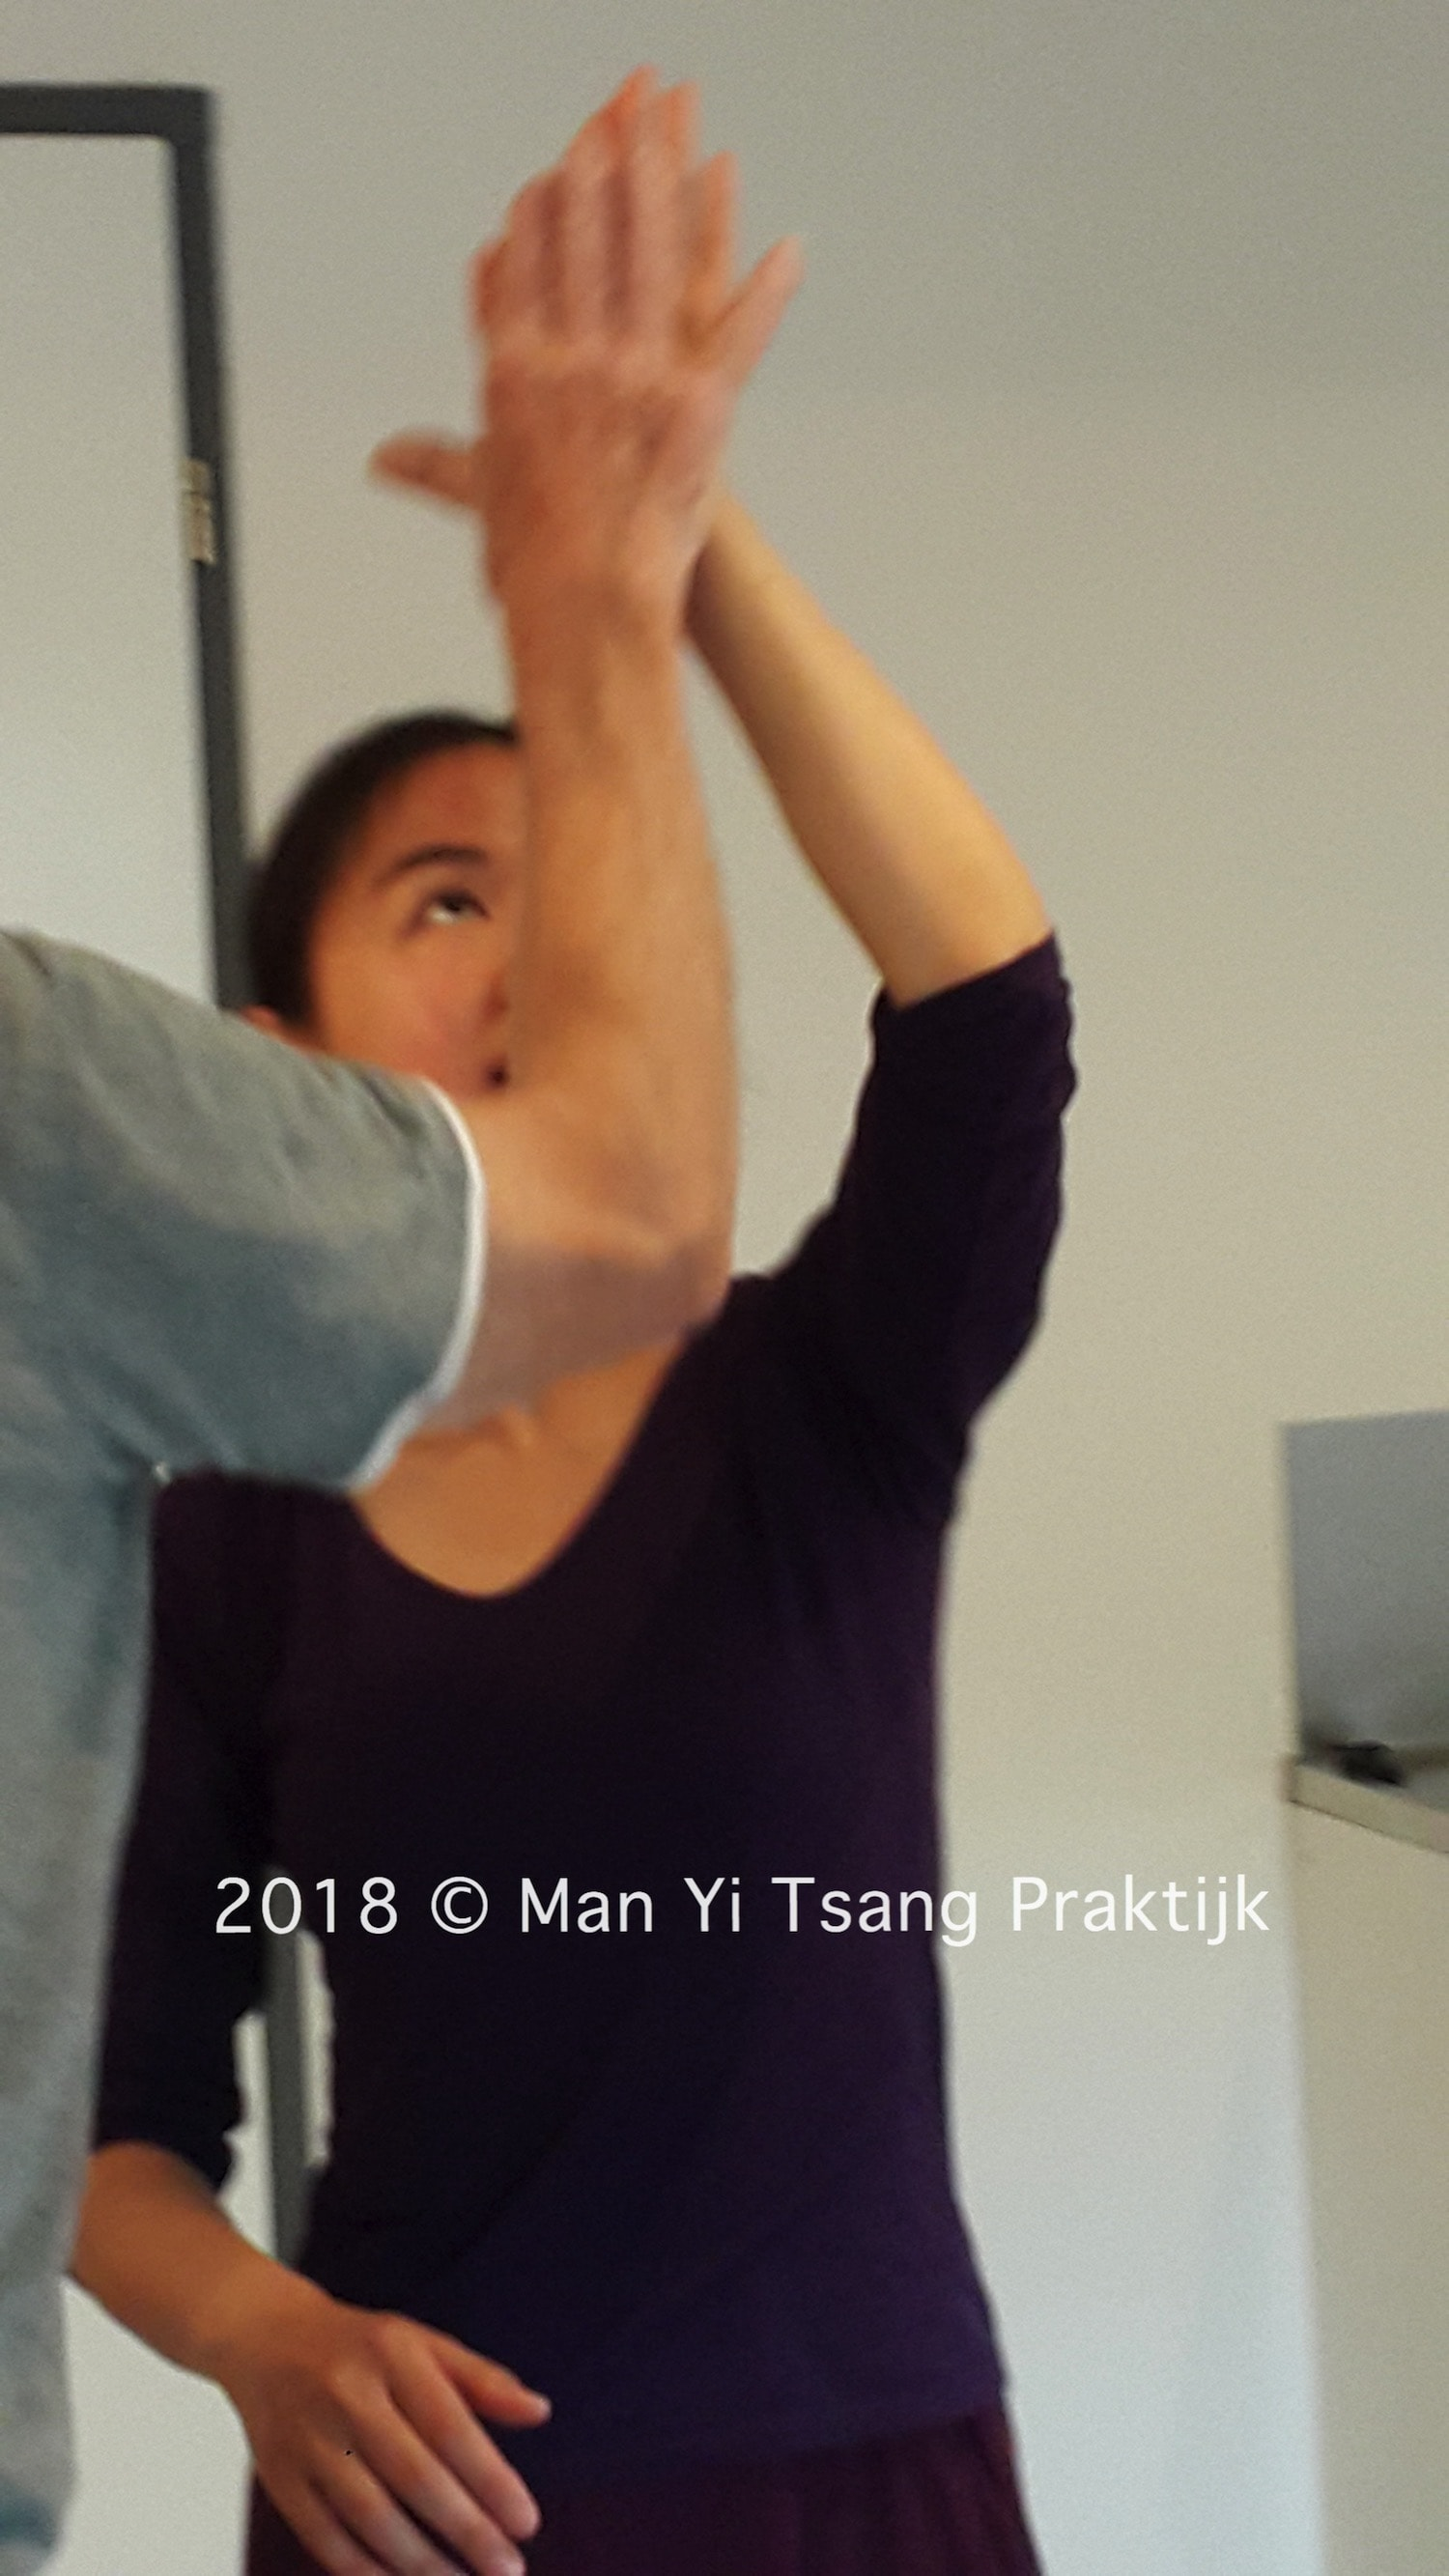 Danstherapie Hand Contact-min.jpg